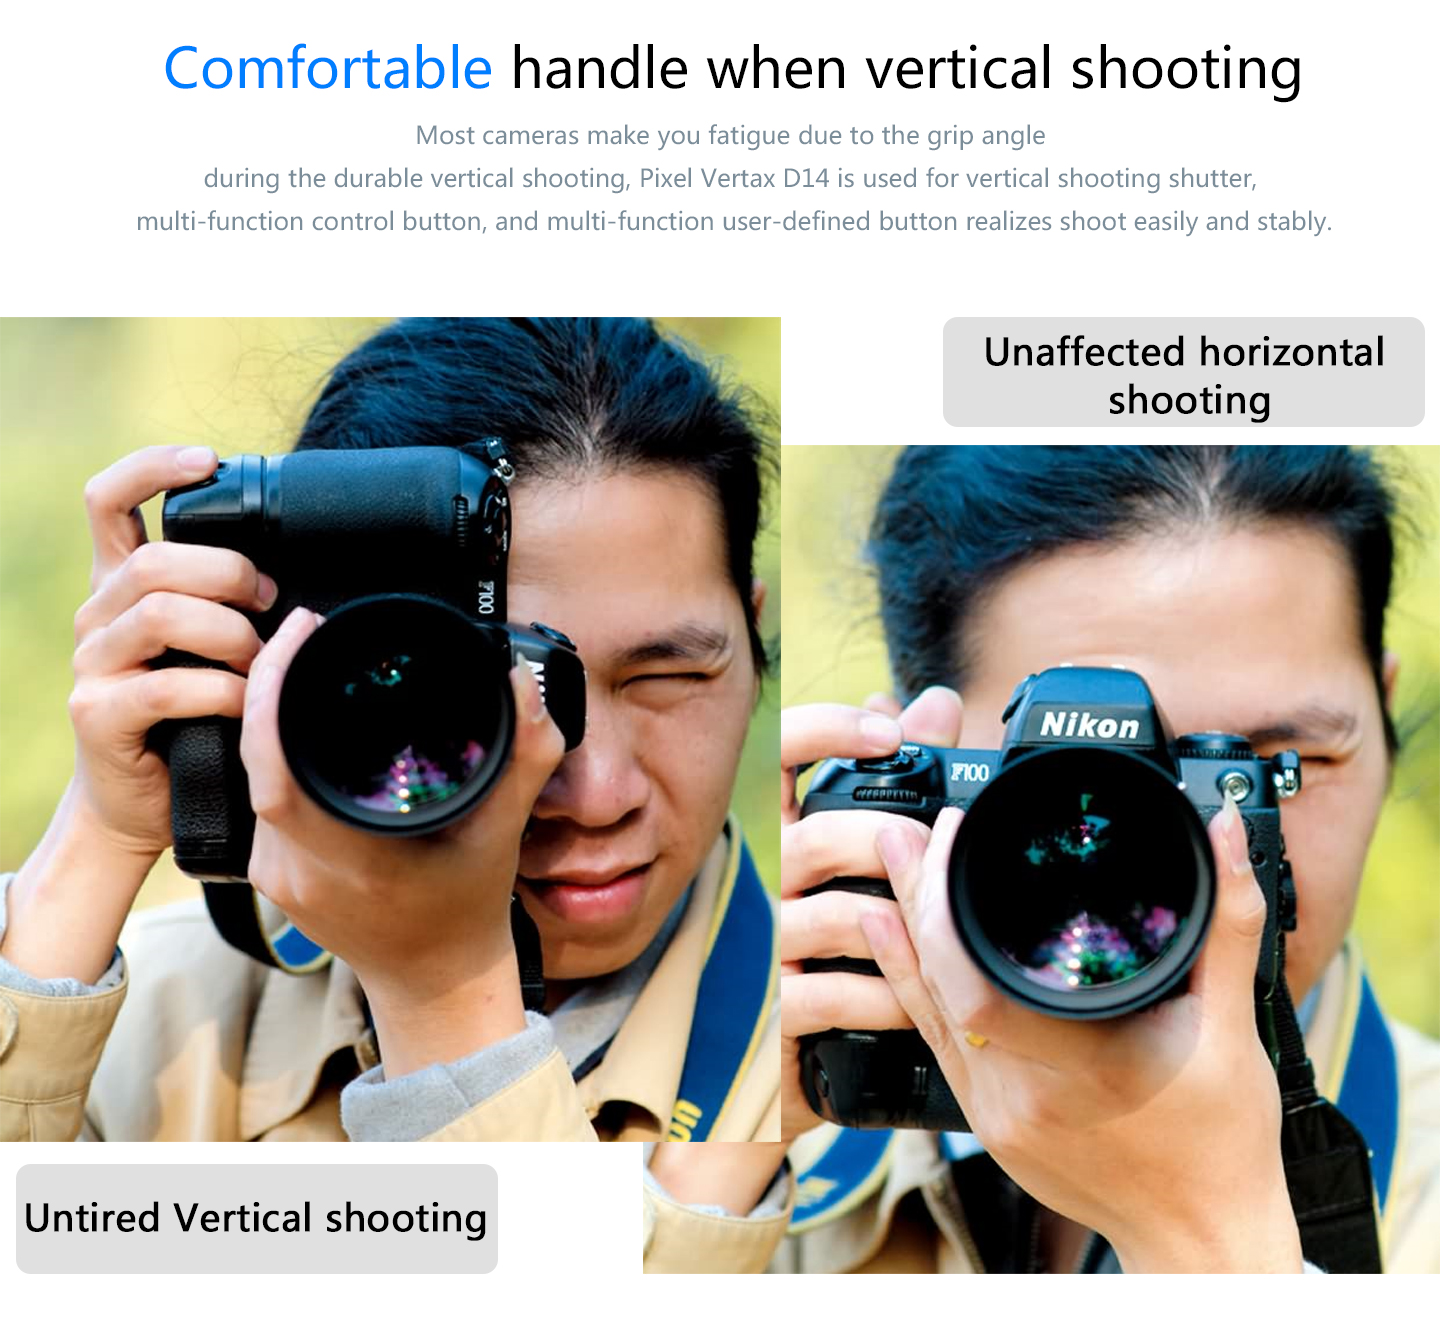 Comfortable handle when vertical shooting